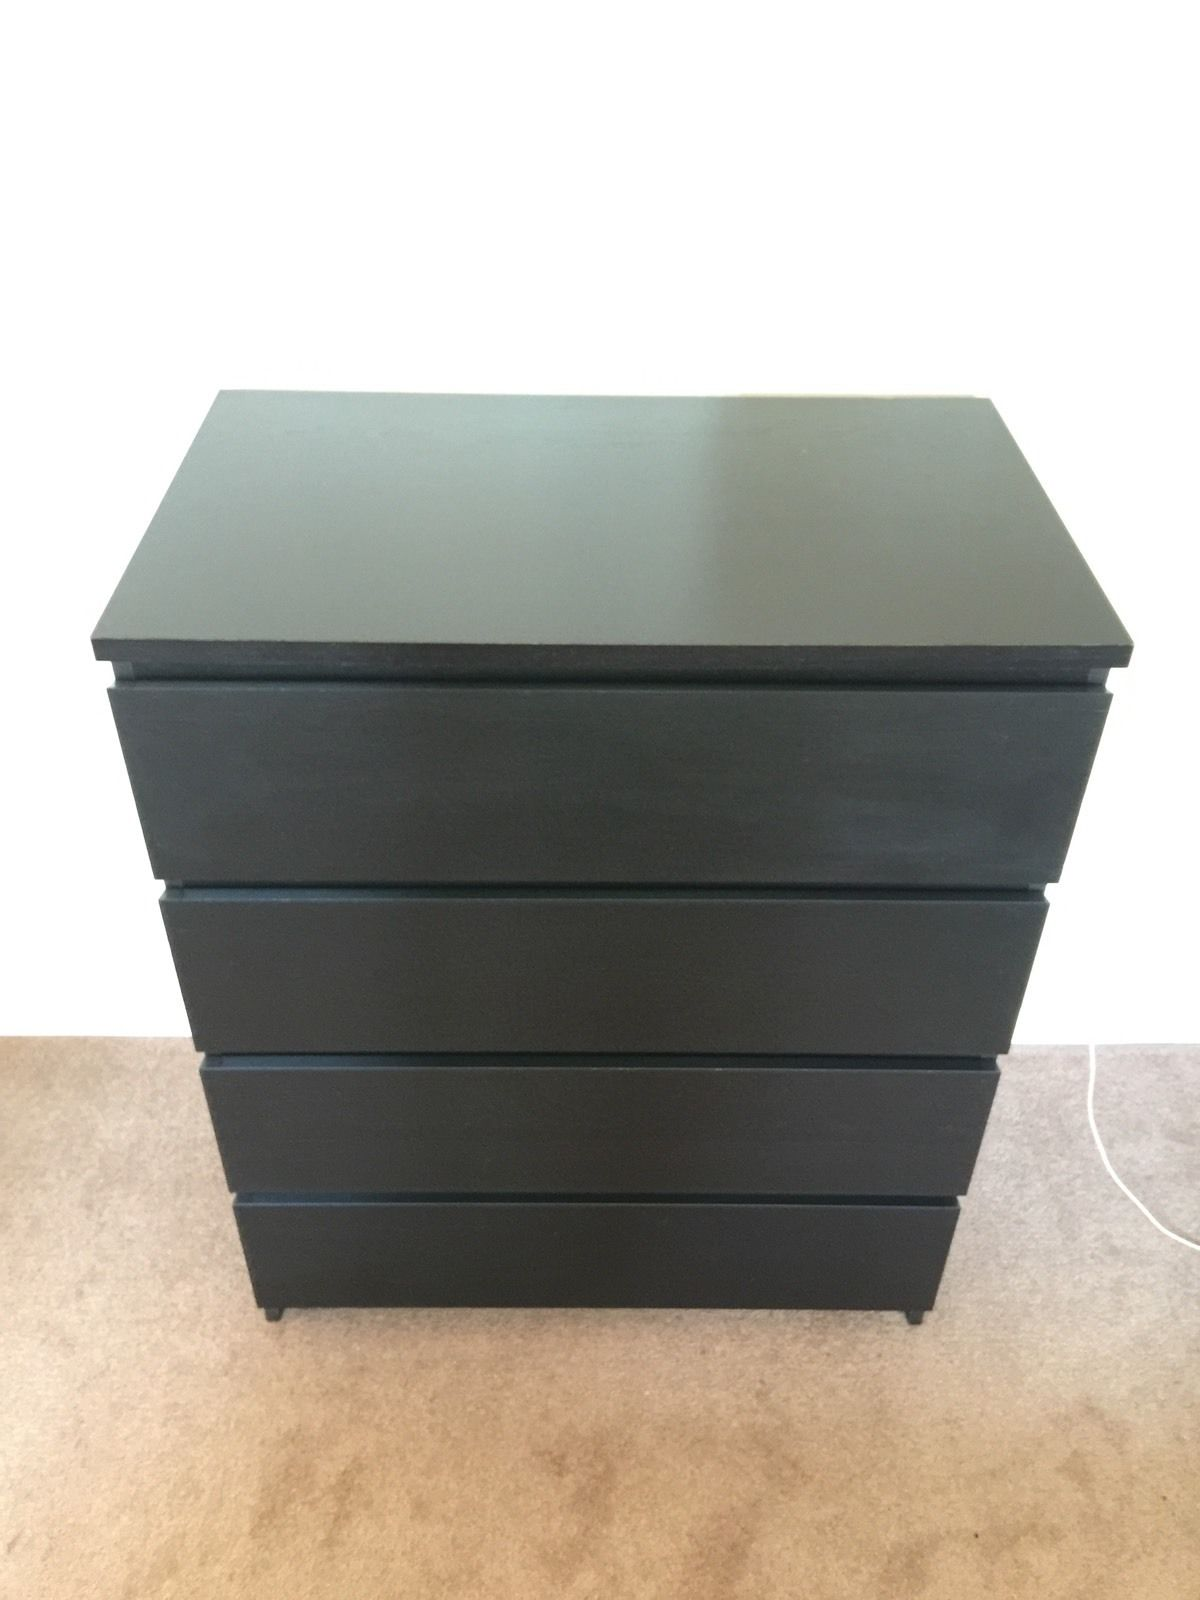 ikea-bedroom-malm-chest-of-4-draws-black-brown